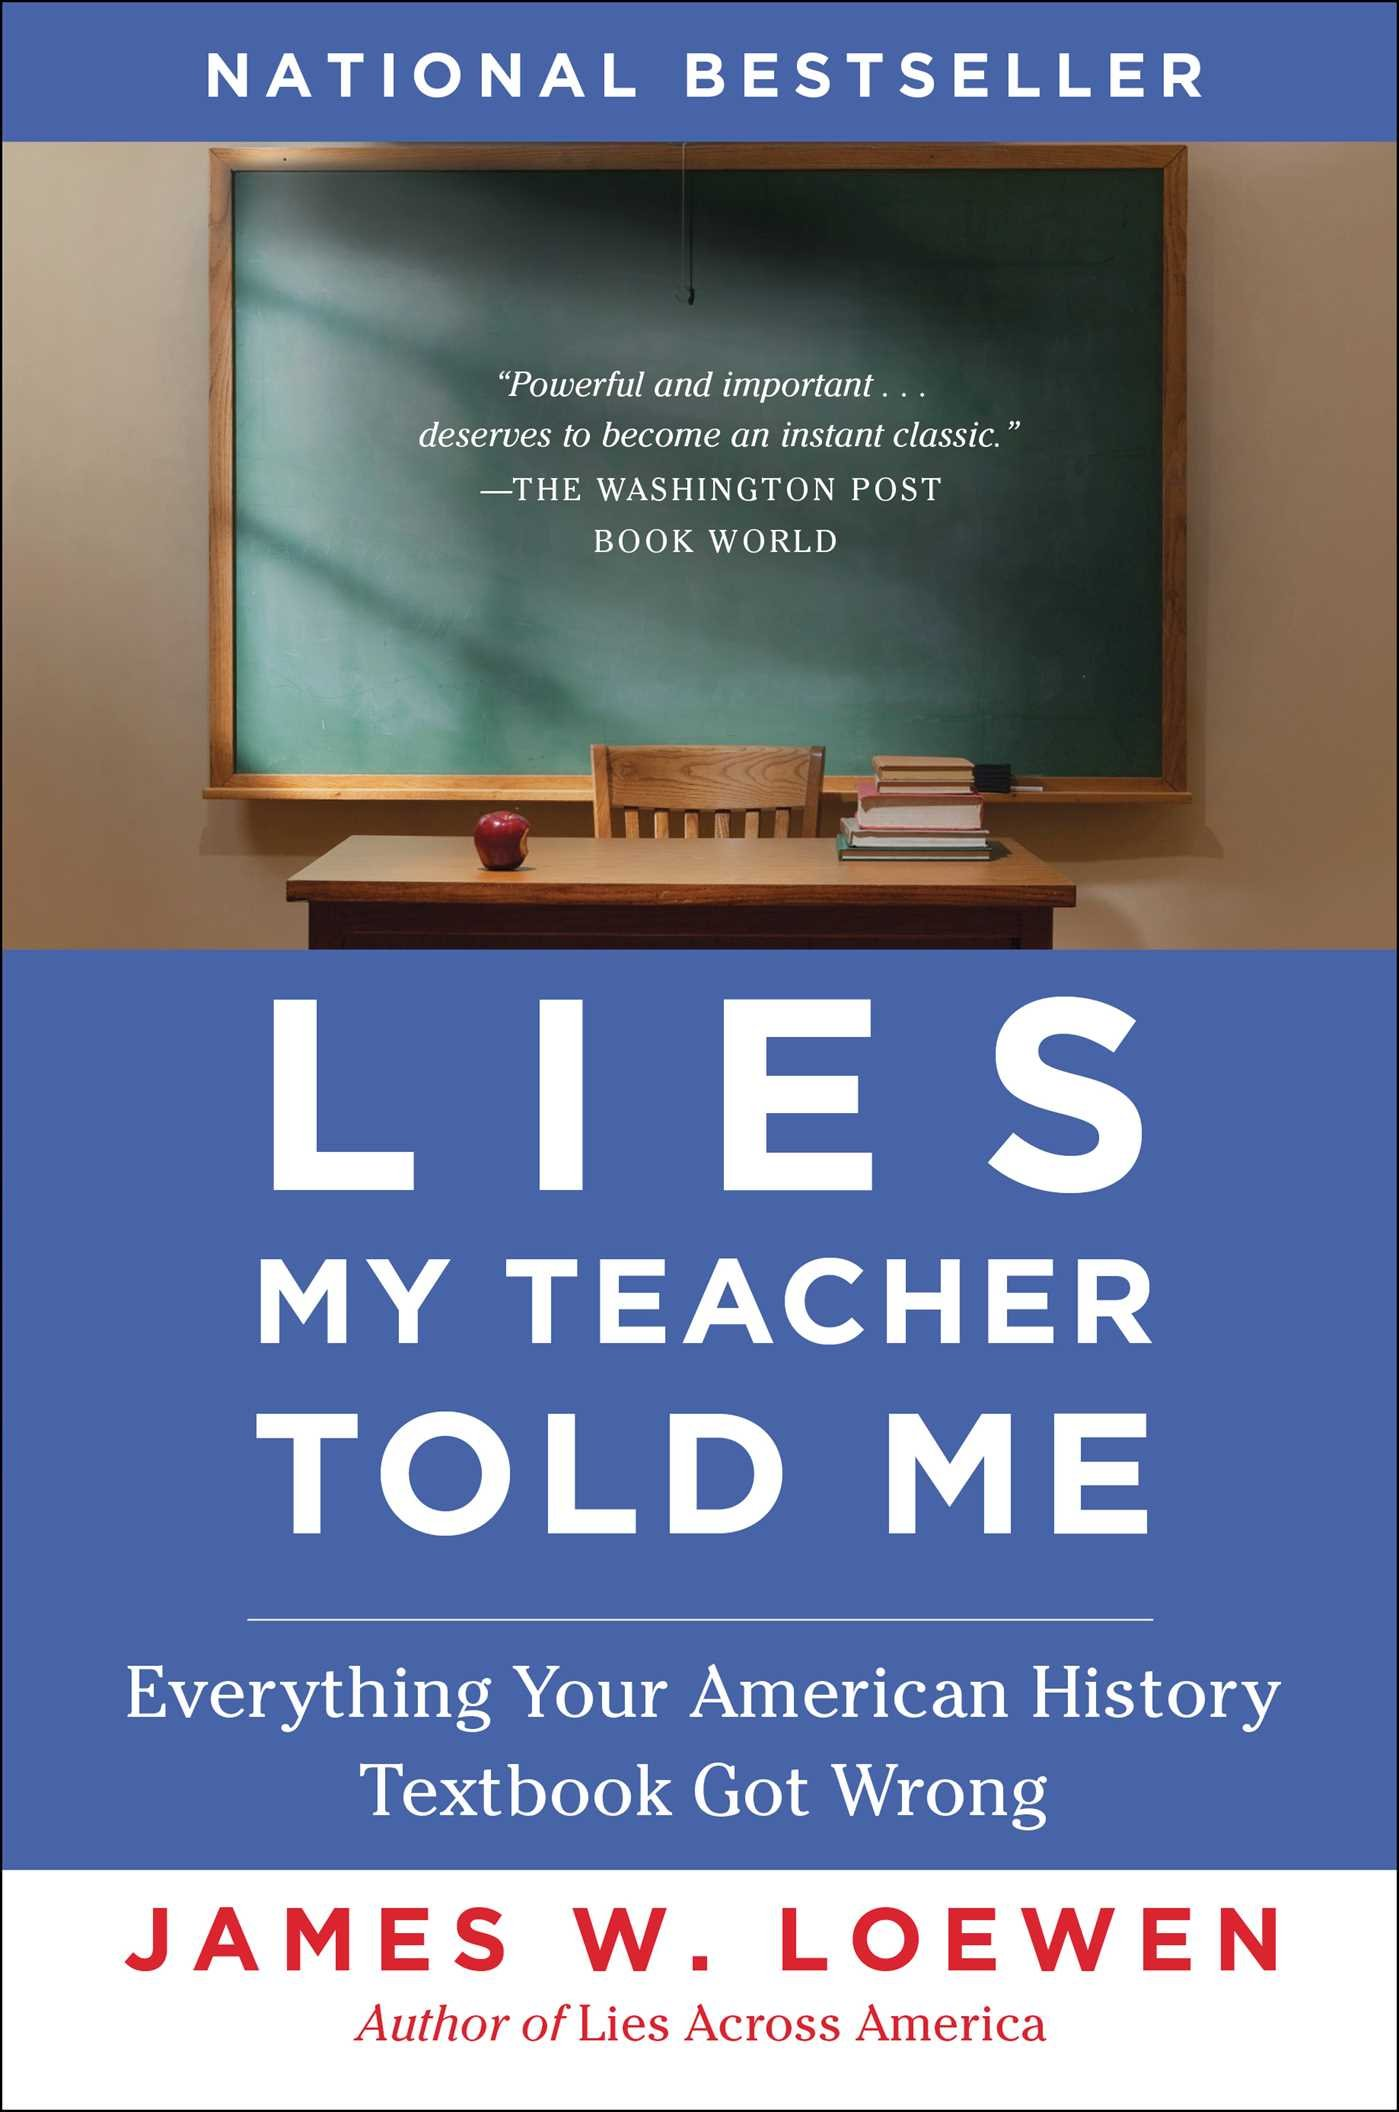 Amazon.com: Lies My Teacher Told Me: Everything Your American History  Textbook Got Wrong (8601400328989): James W. Loewen: Books